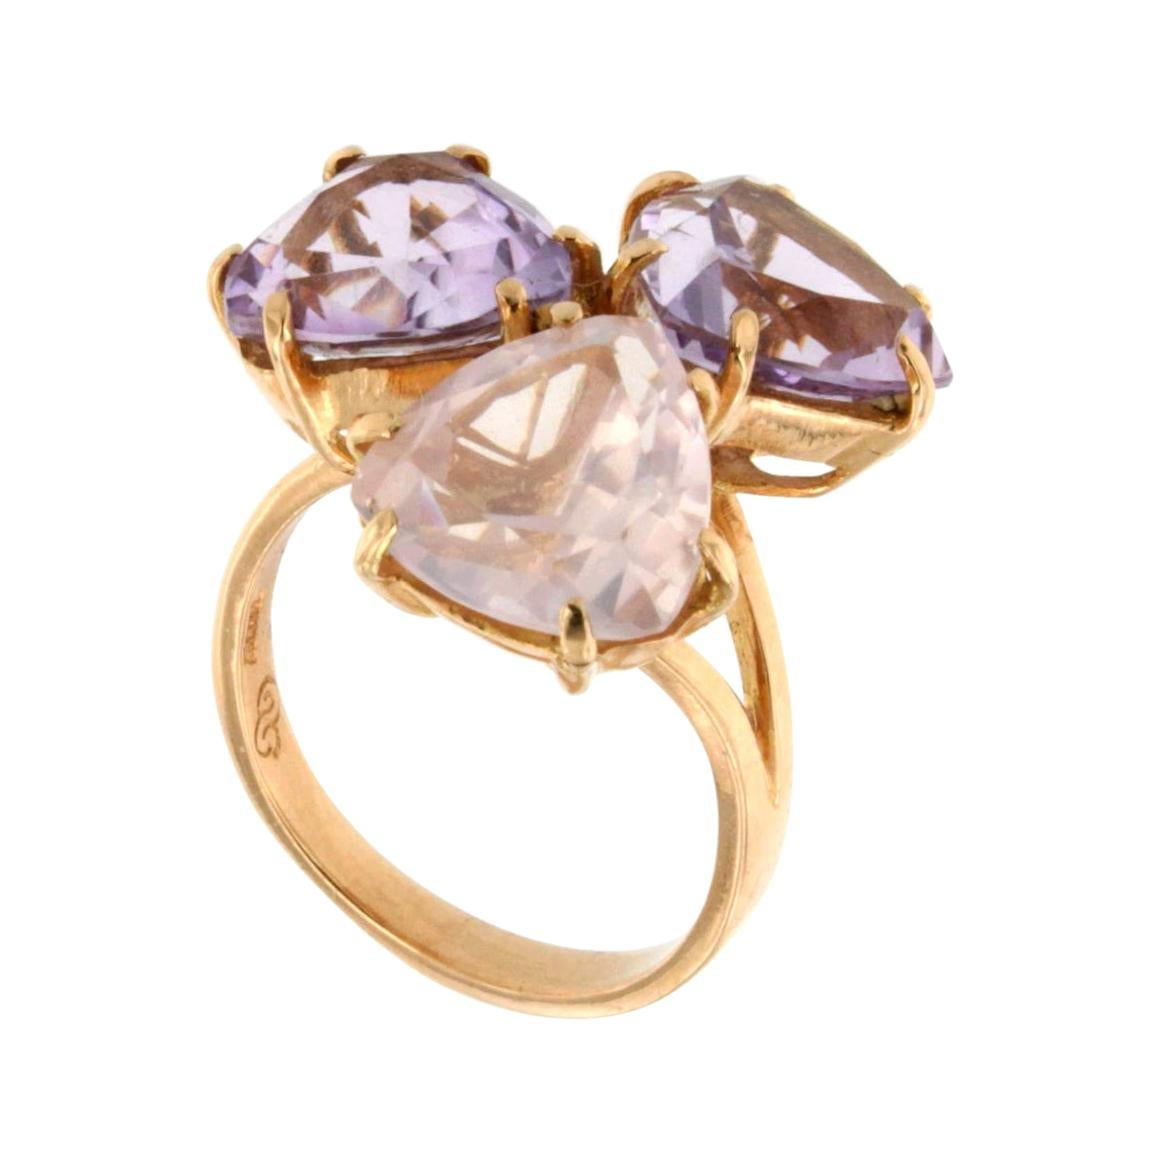 18k Rose Gold with Amethyst and Pink Quartz Ring